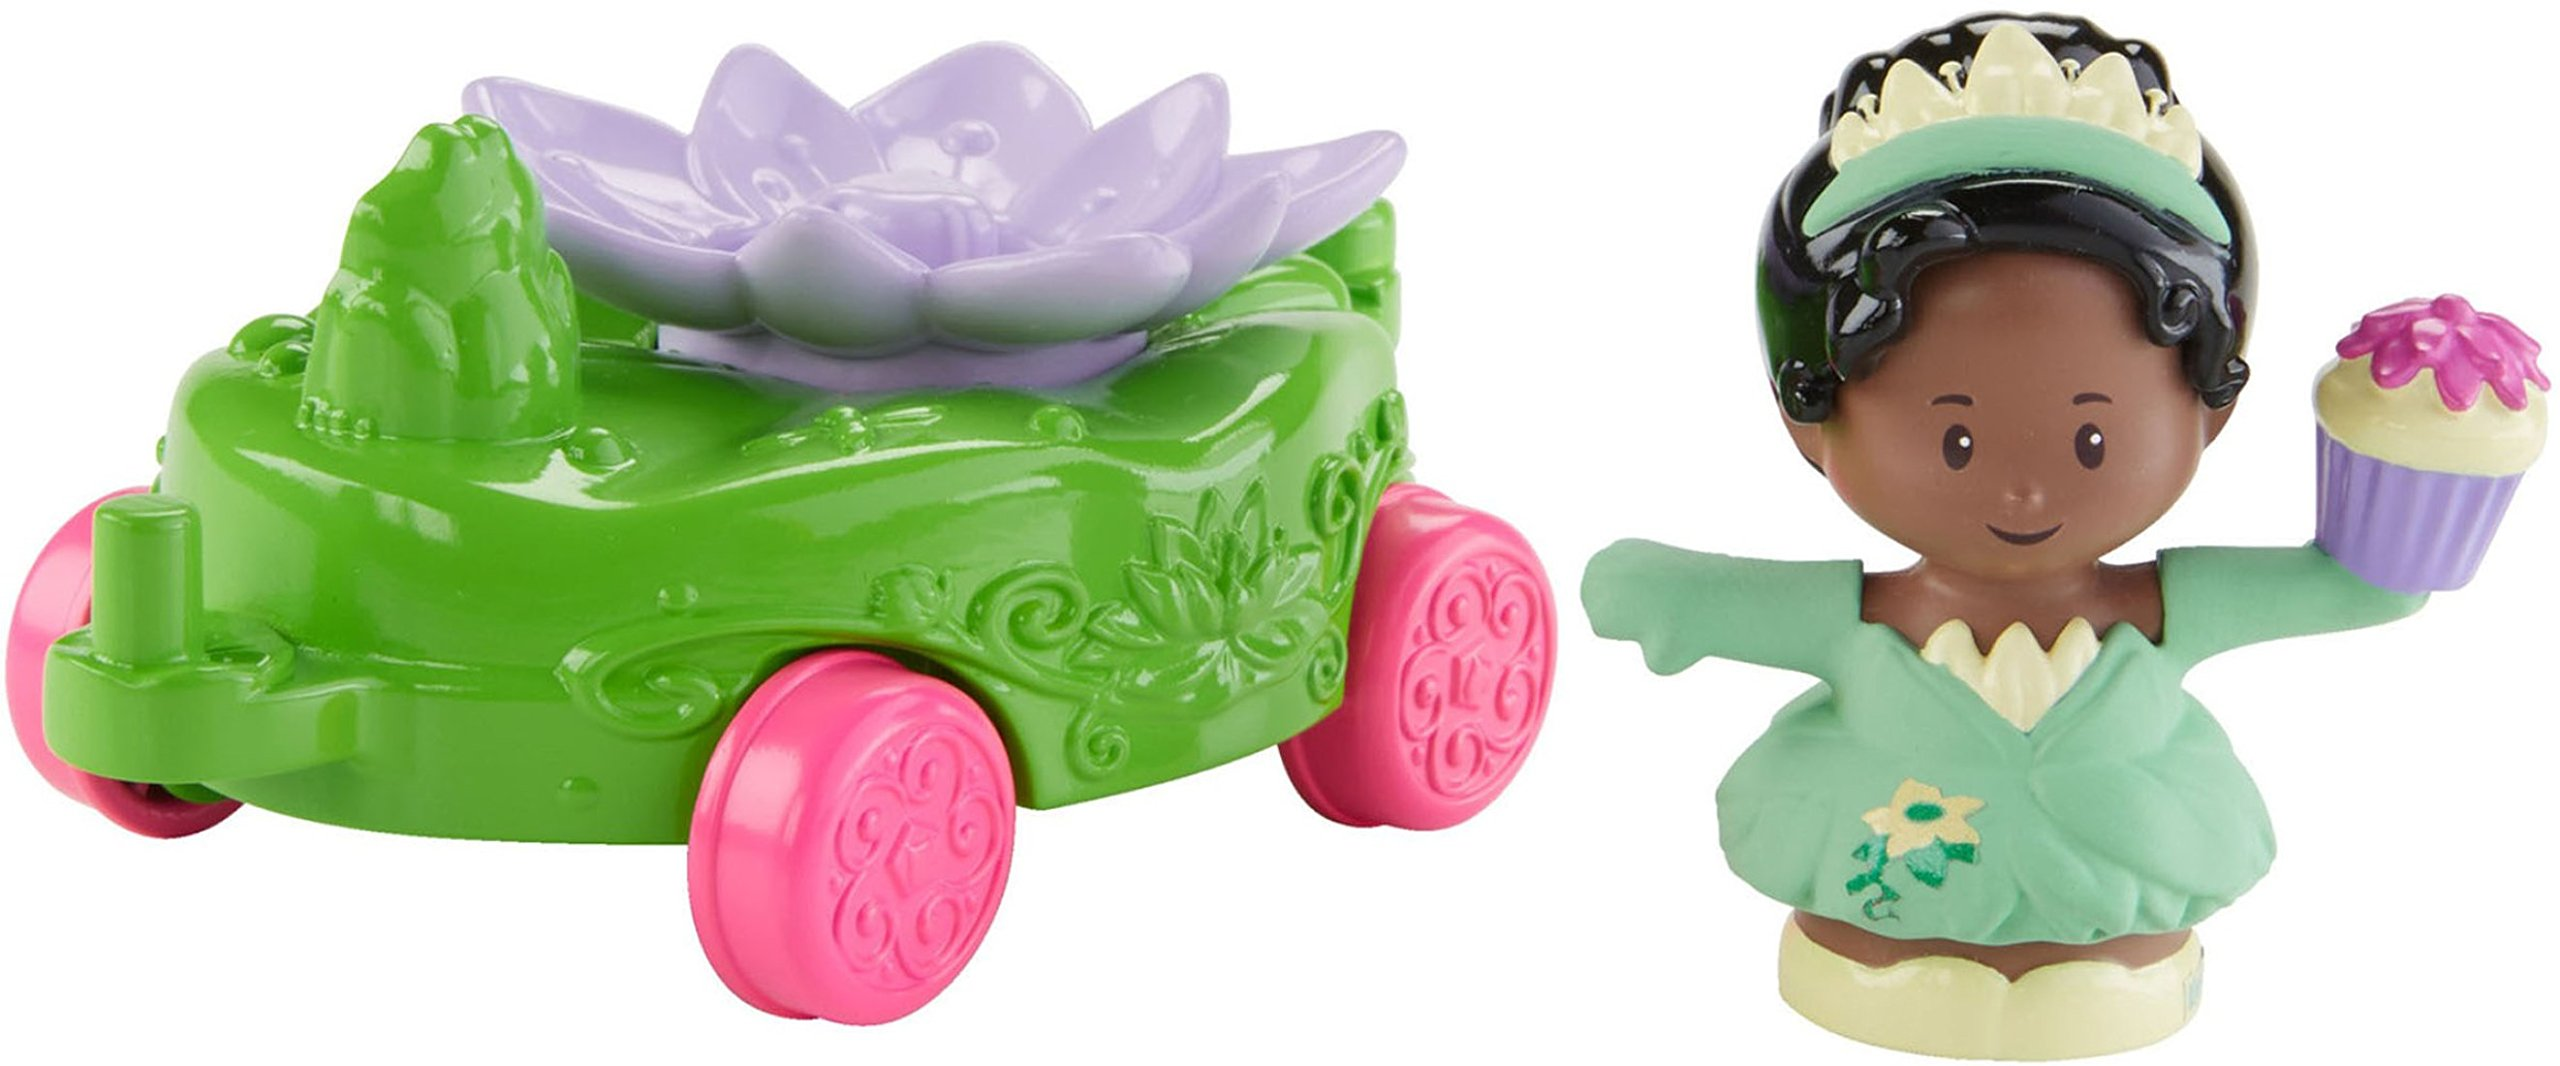 Fisher-Price Little People Disney Princess Parade Tiana & Prince Naveen's Float